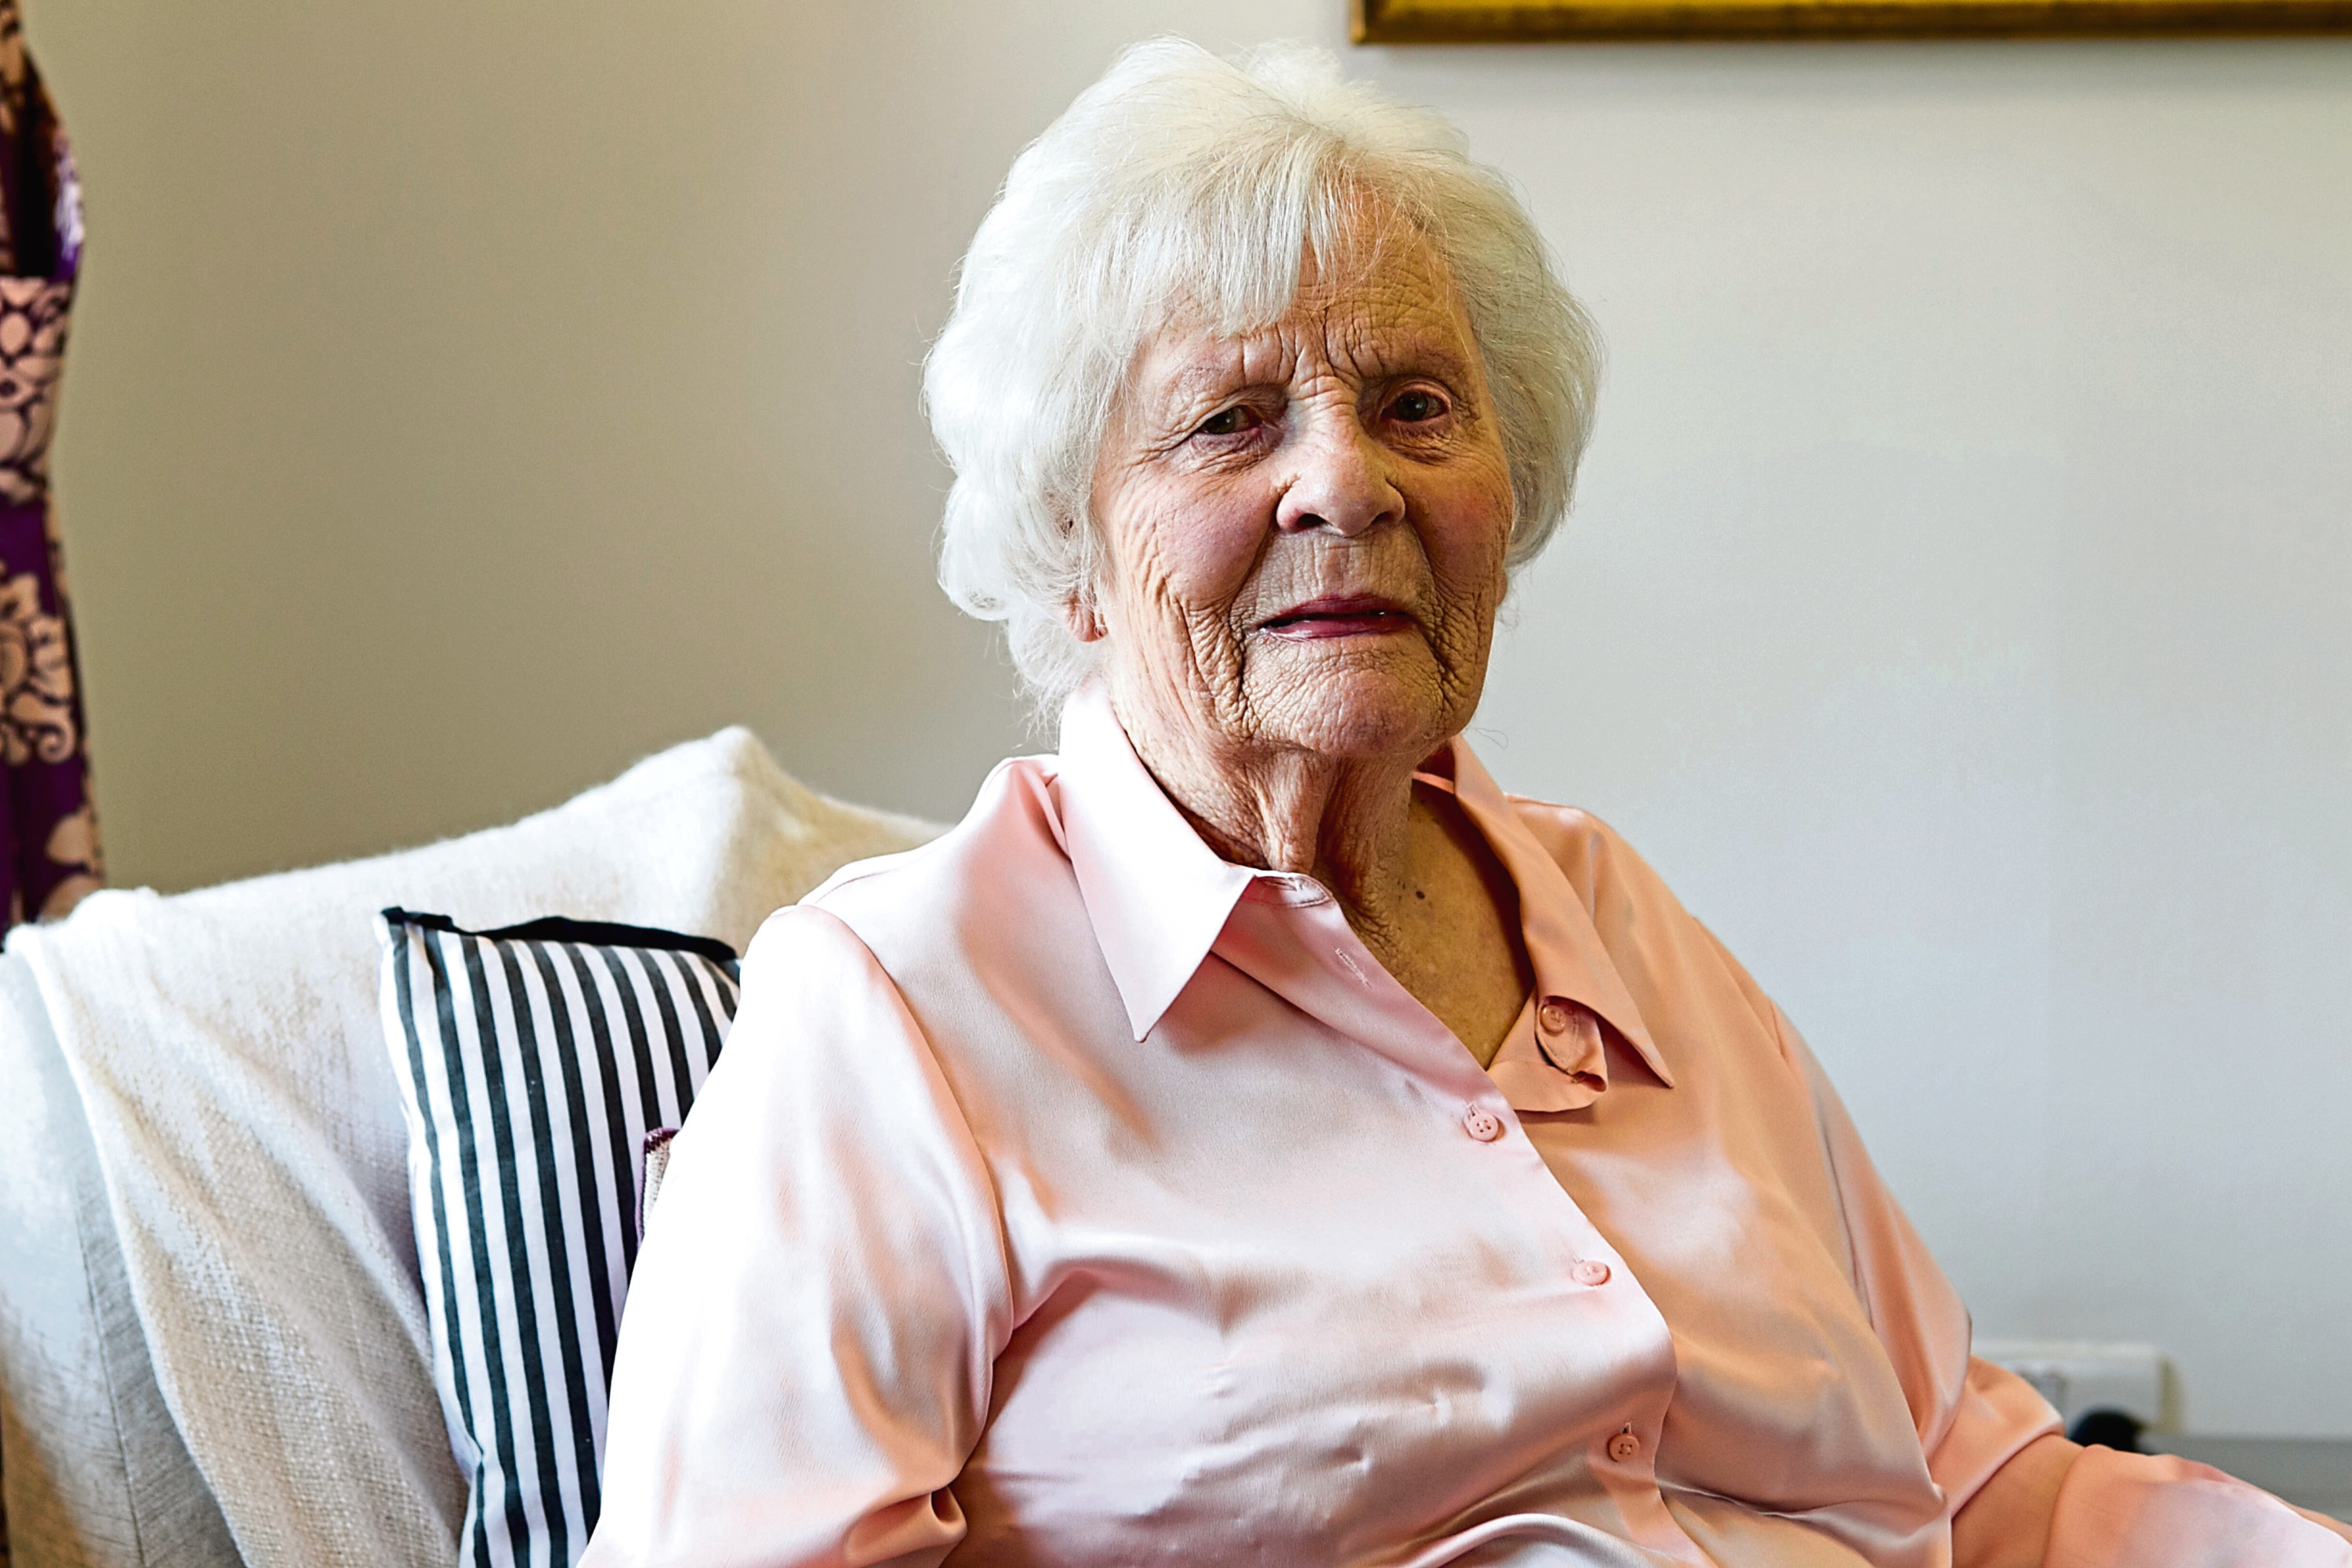 Agnes MacLeod, who worked as a nurse during the war to wounded soldiers (Andrew Cawley / DC Thomson)